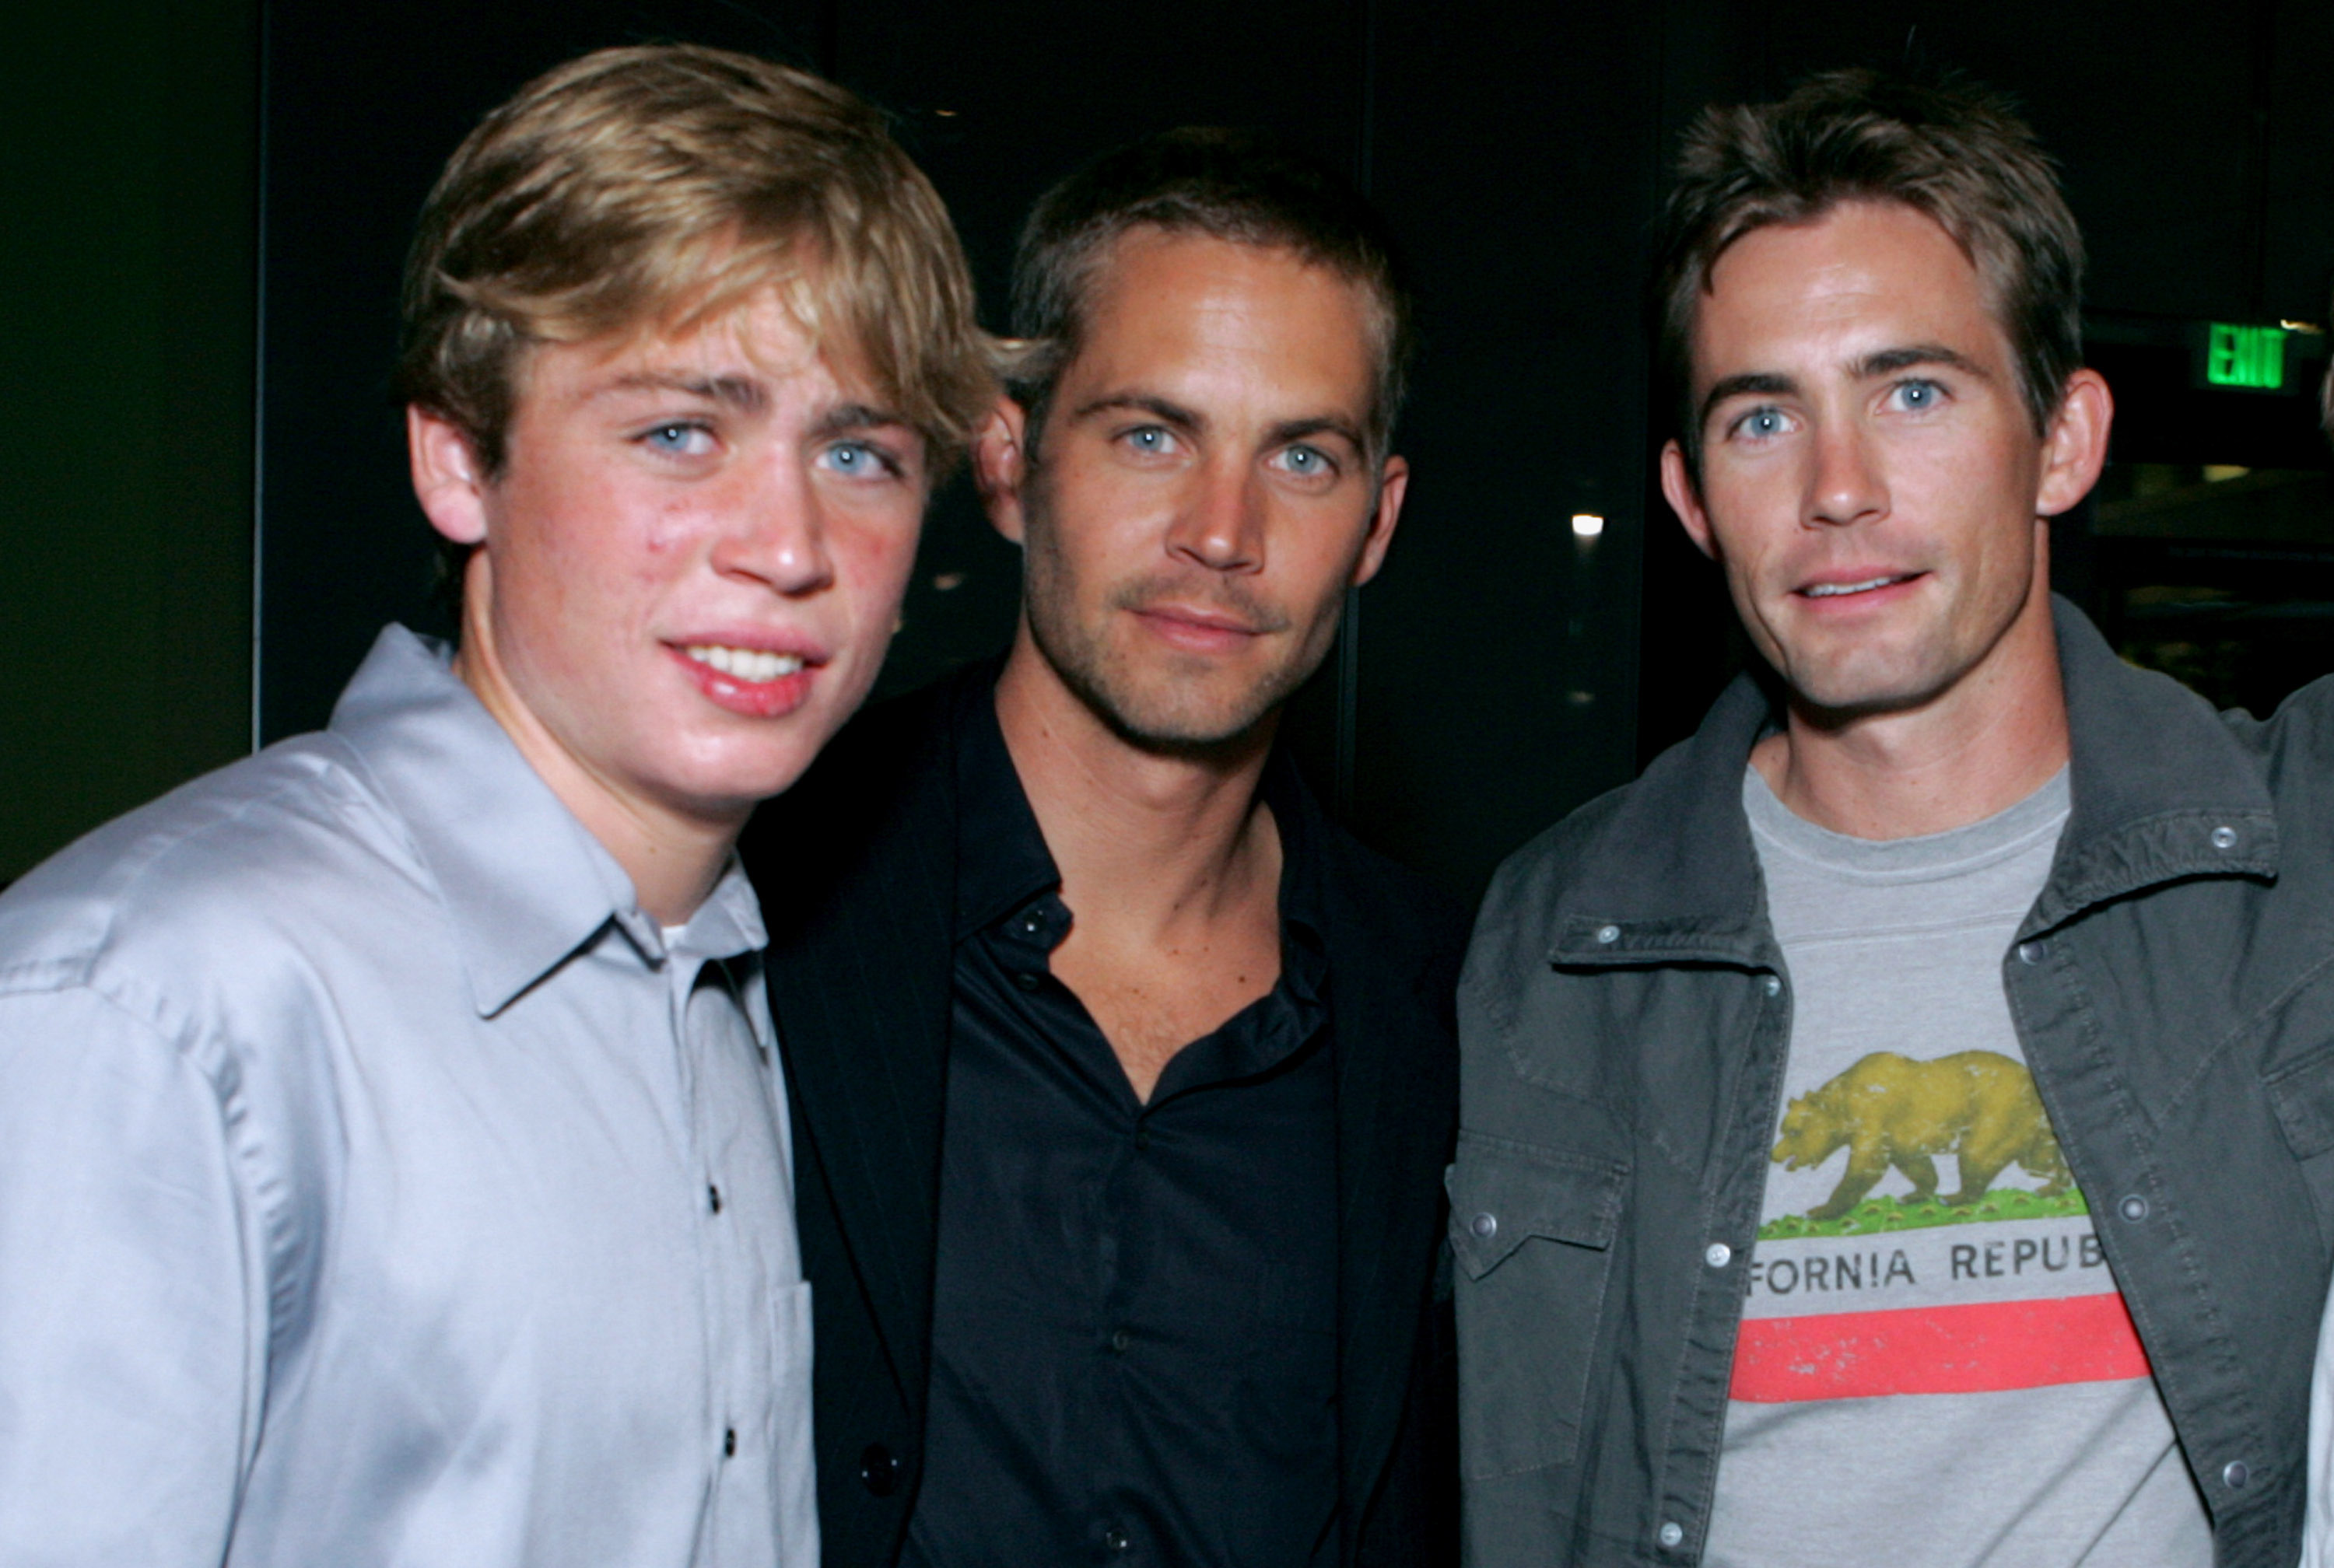 Paul-Walkers-Family-Hope-To-Bring-His-Character-Back-To-Fast-Furious-Franchise